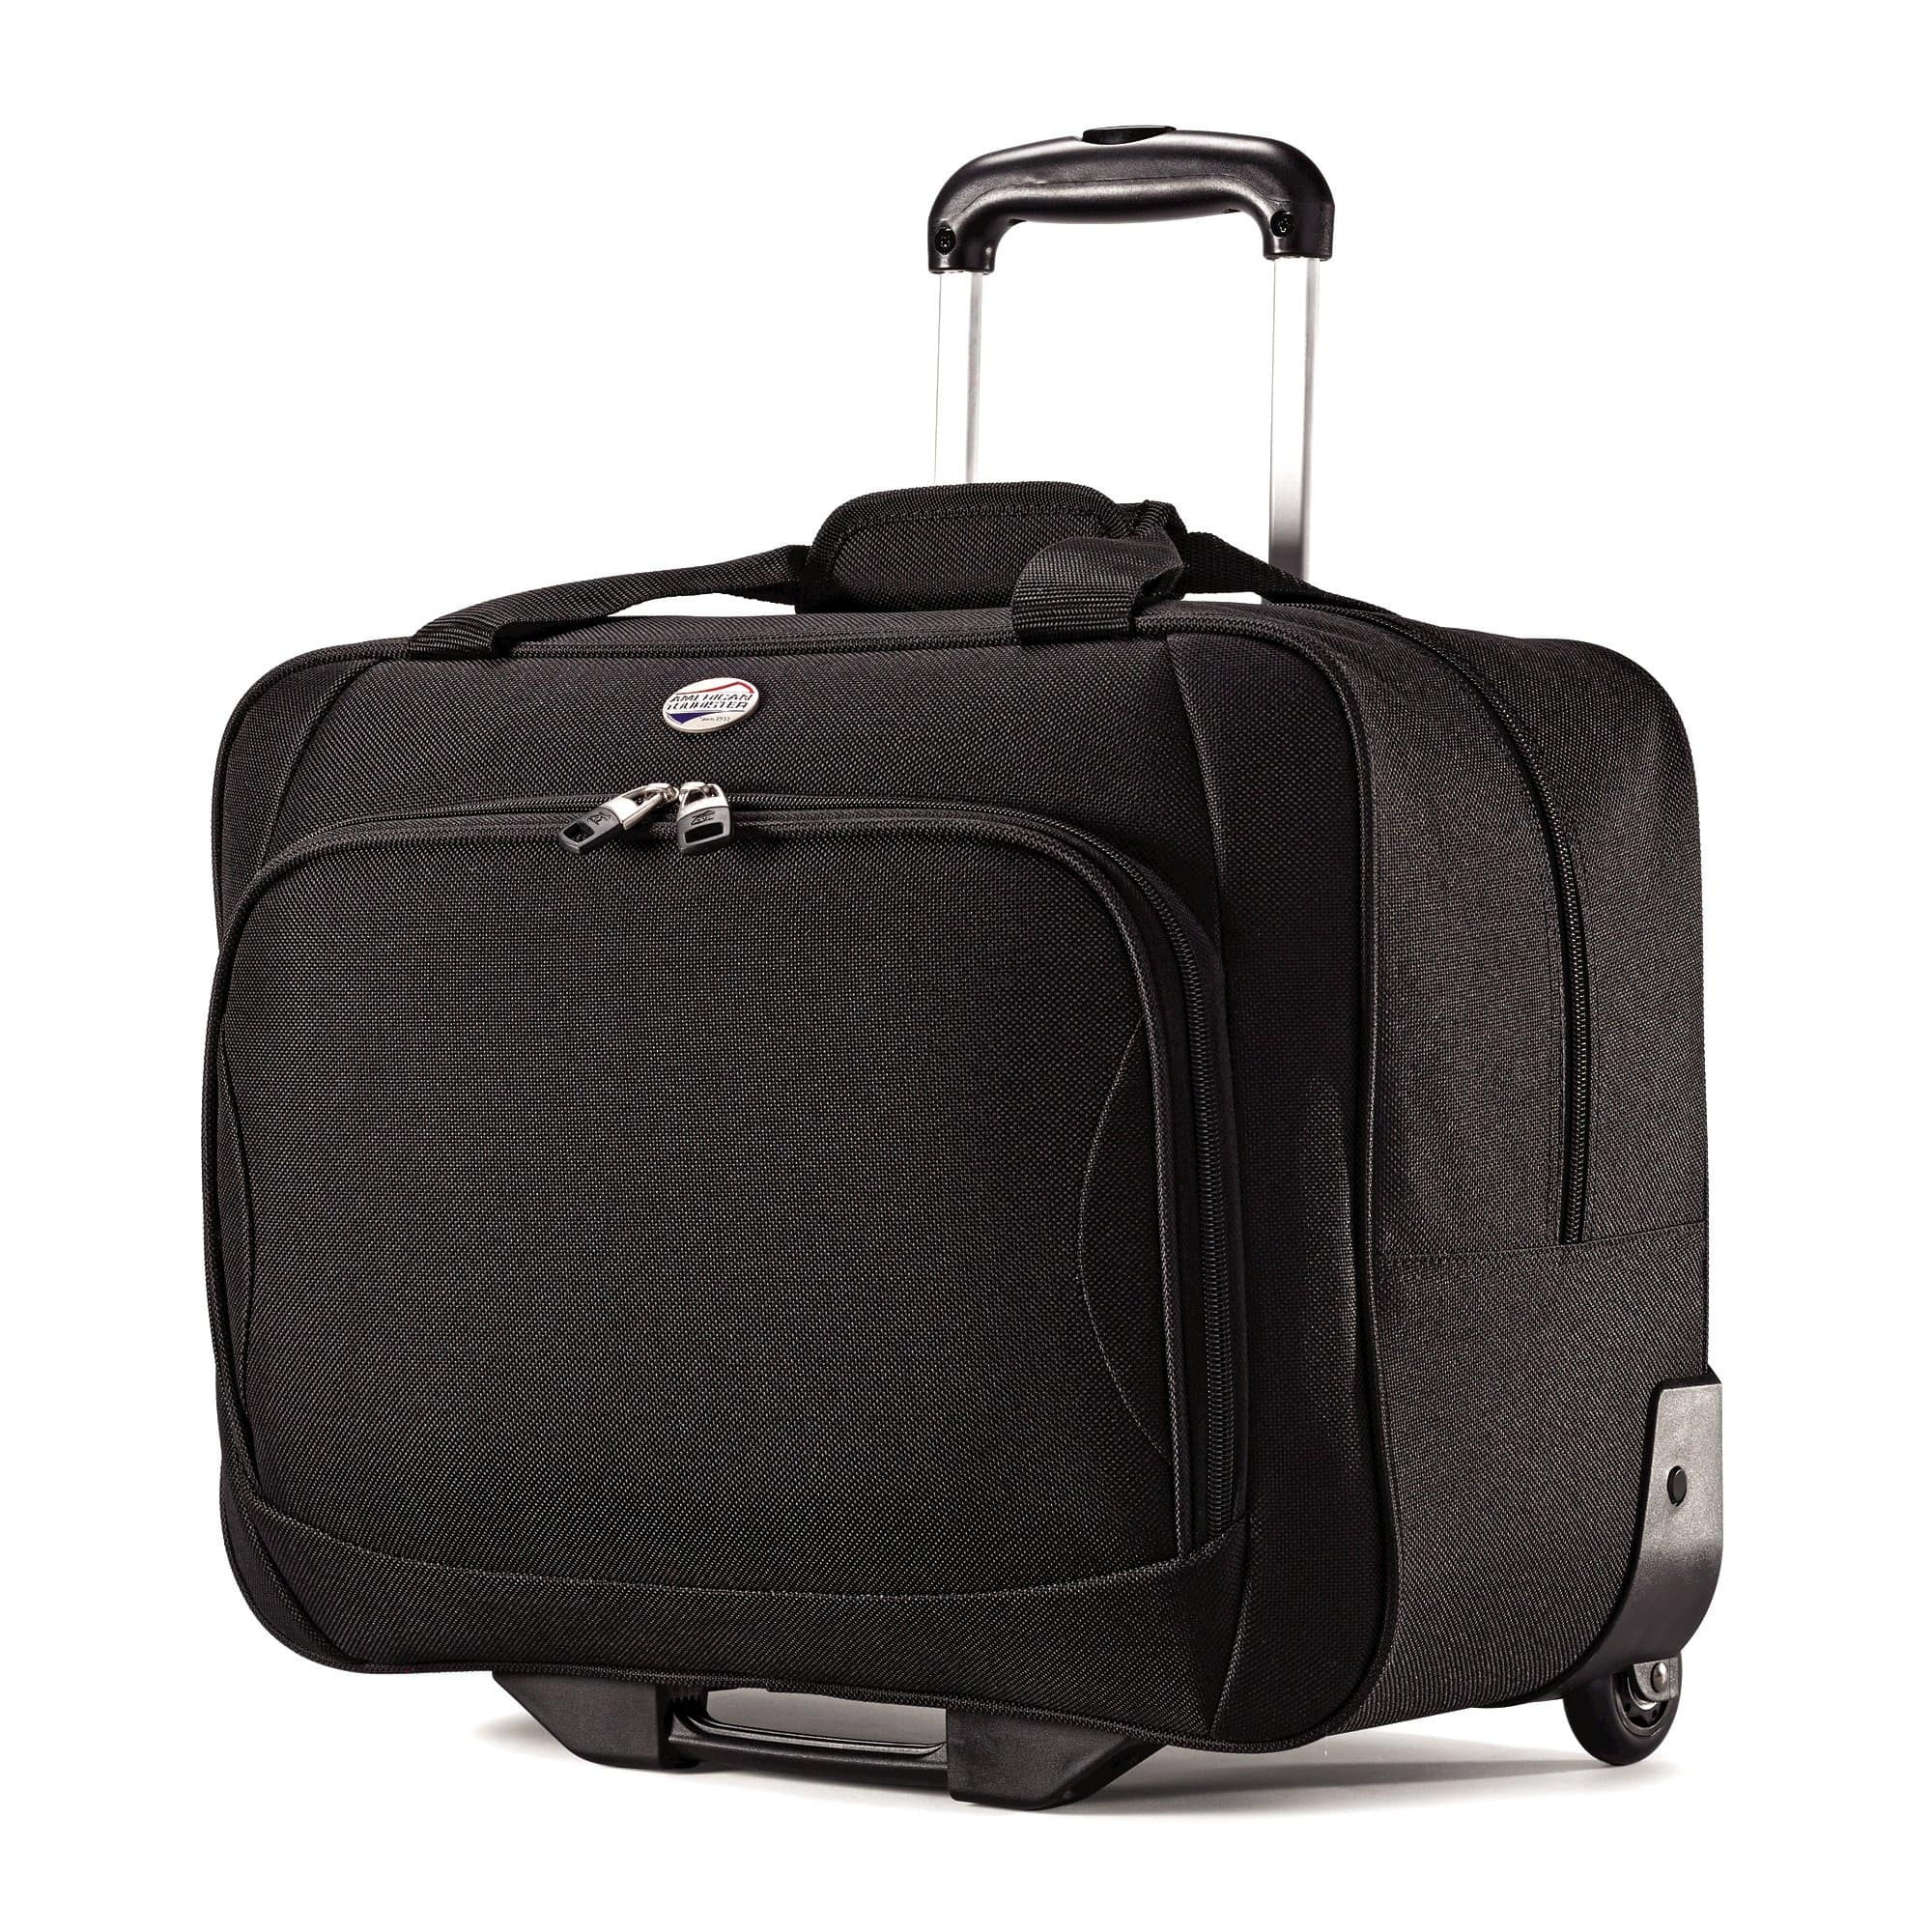 American Tourister Splash 2-Wheeled Boarding Bag - Black on clearance for $21.57 + Free store pick up or FS over $30